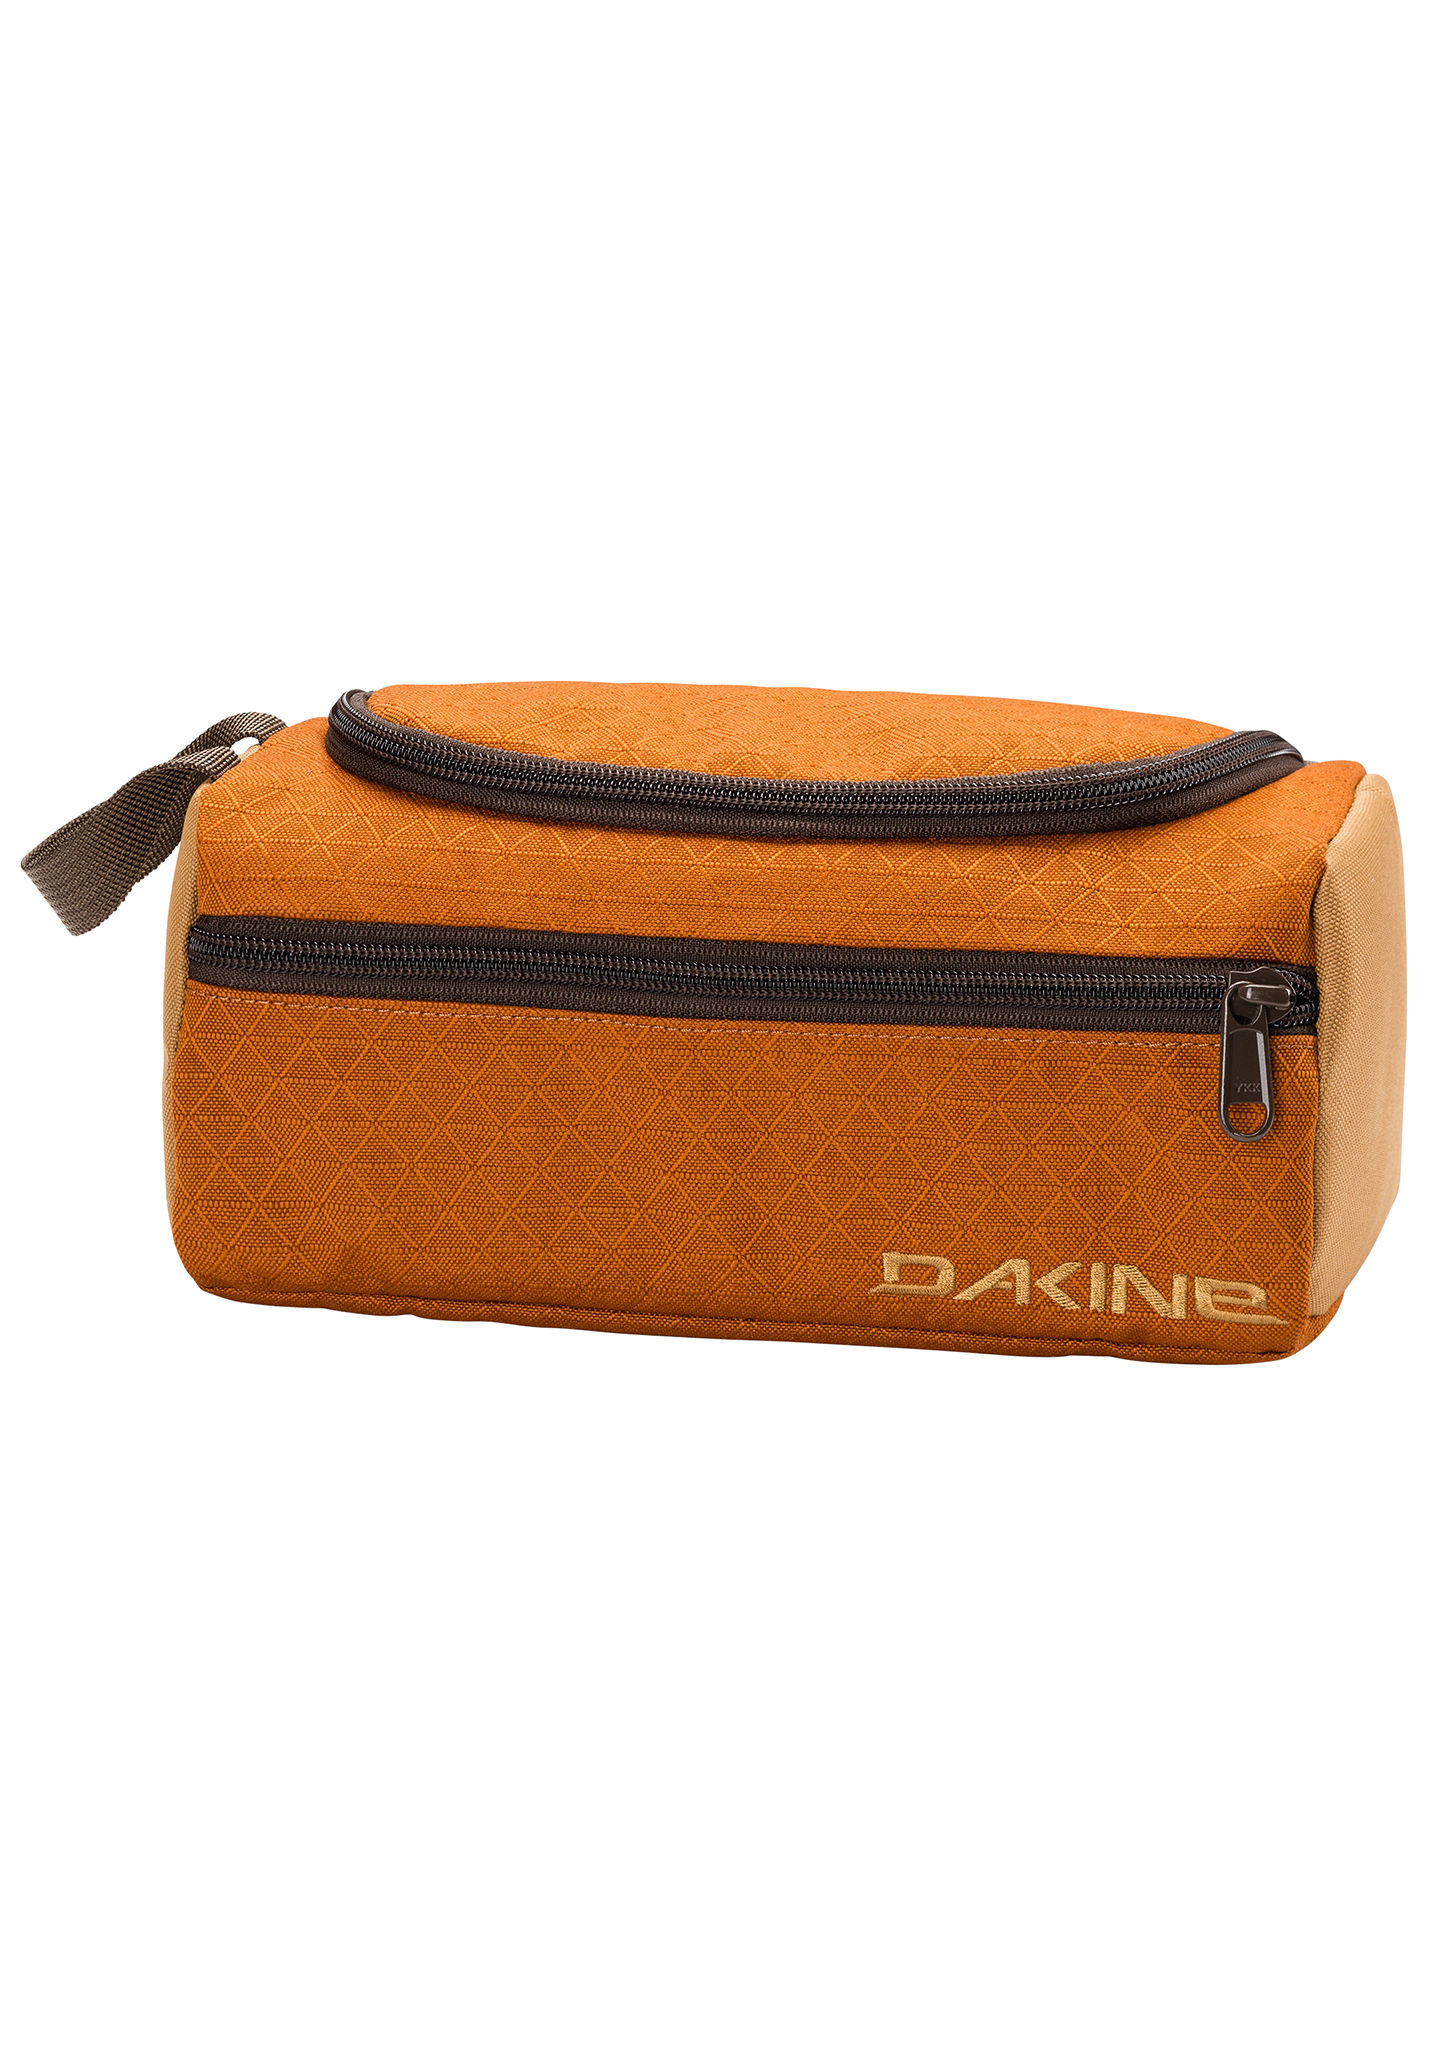 Trousse de toilette Dakine Groomer Copper orange